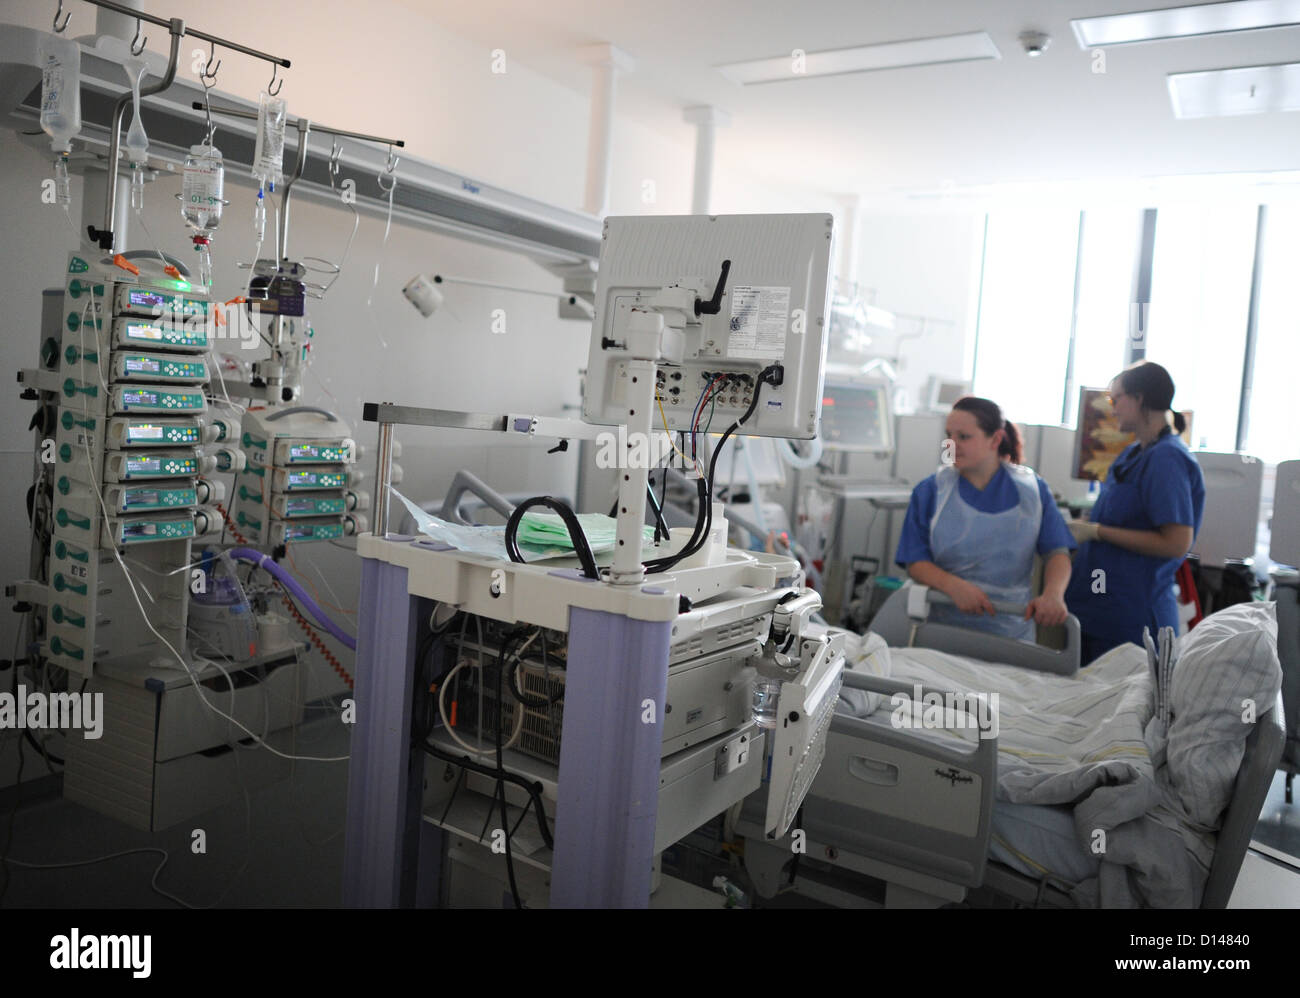 A team of ICU nurses tend to a patient at the Intensive Care Unit at the university hospital in Hamburg-Eppedorf, - Stock Image